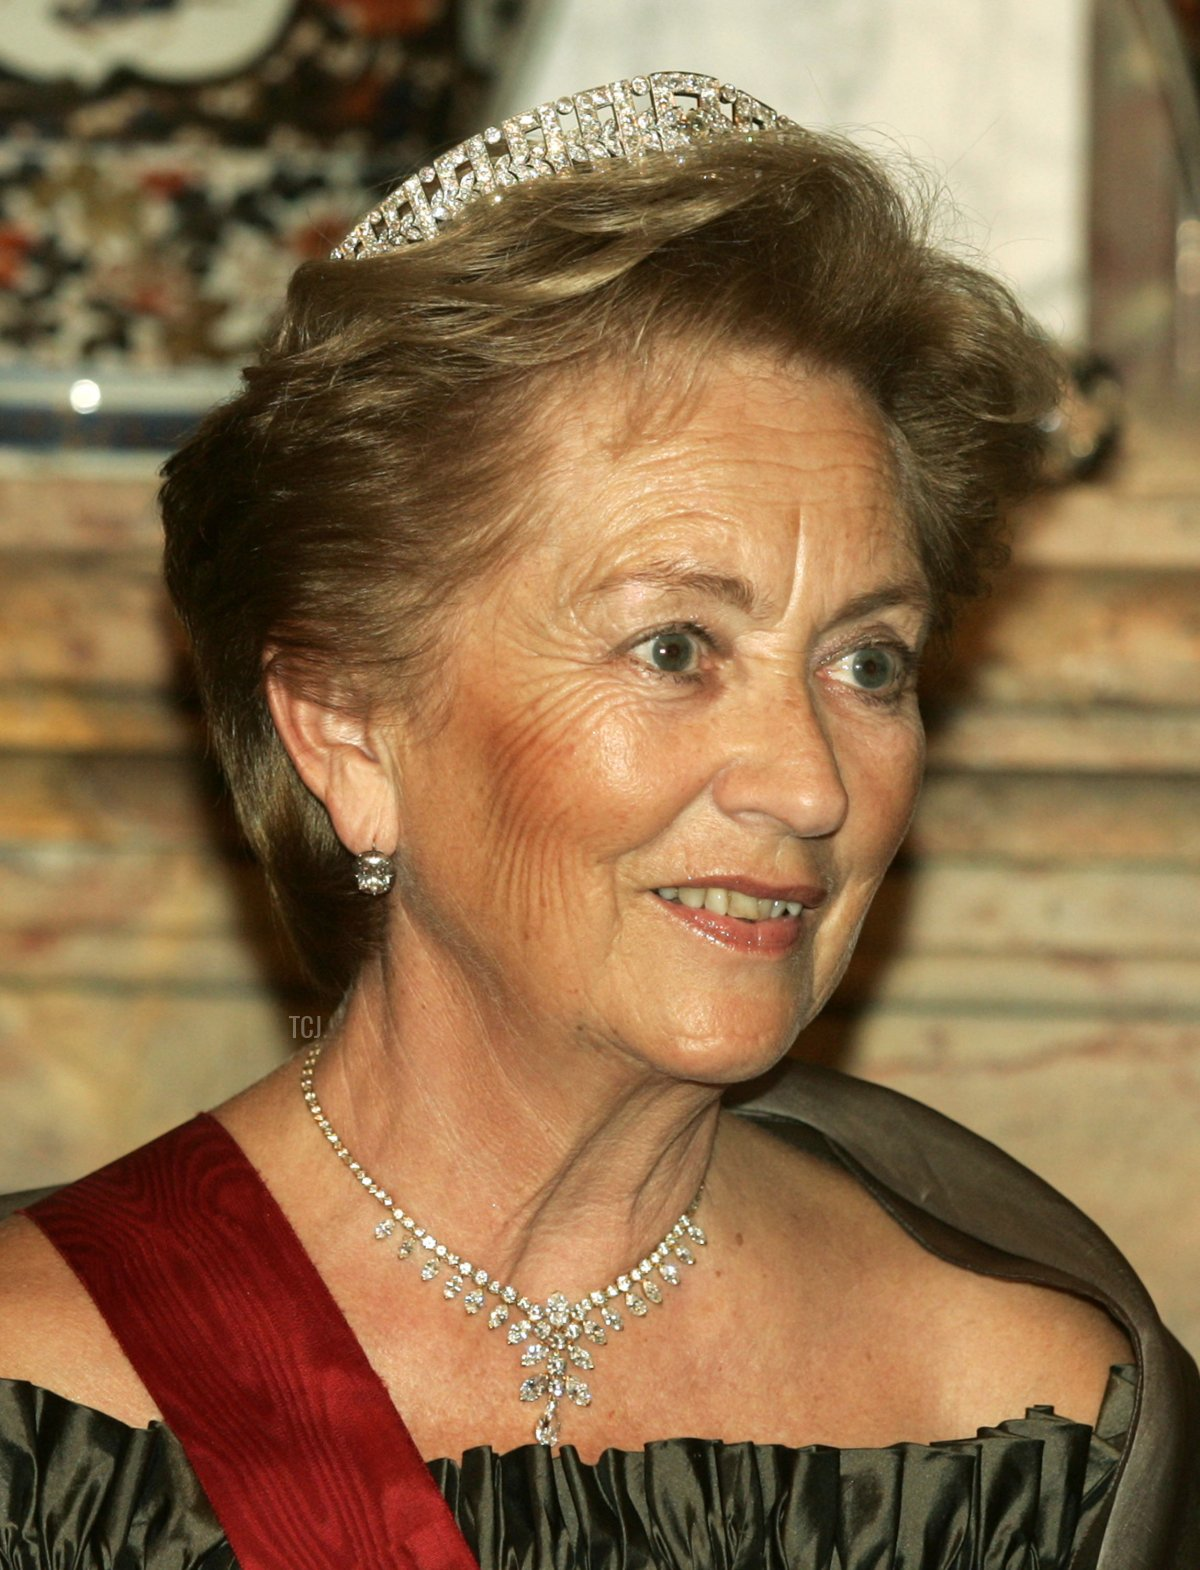 Queen Paola of Belgium poses before the gala dinner at Laeken Castle October 18, 2005 in Brussels, Belgium